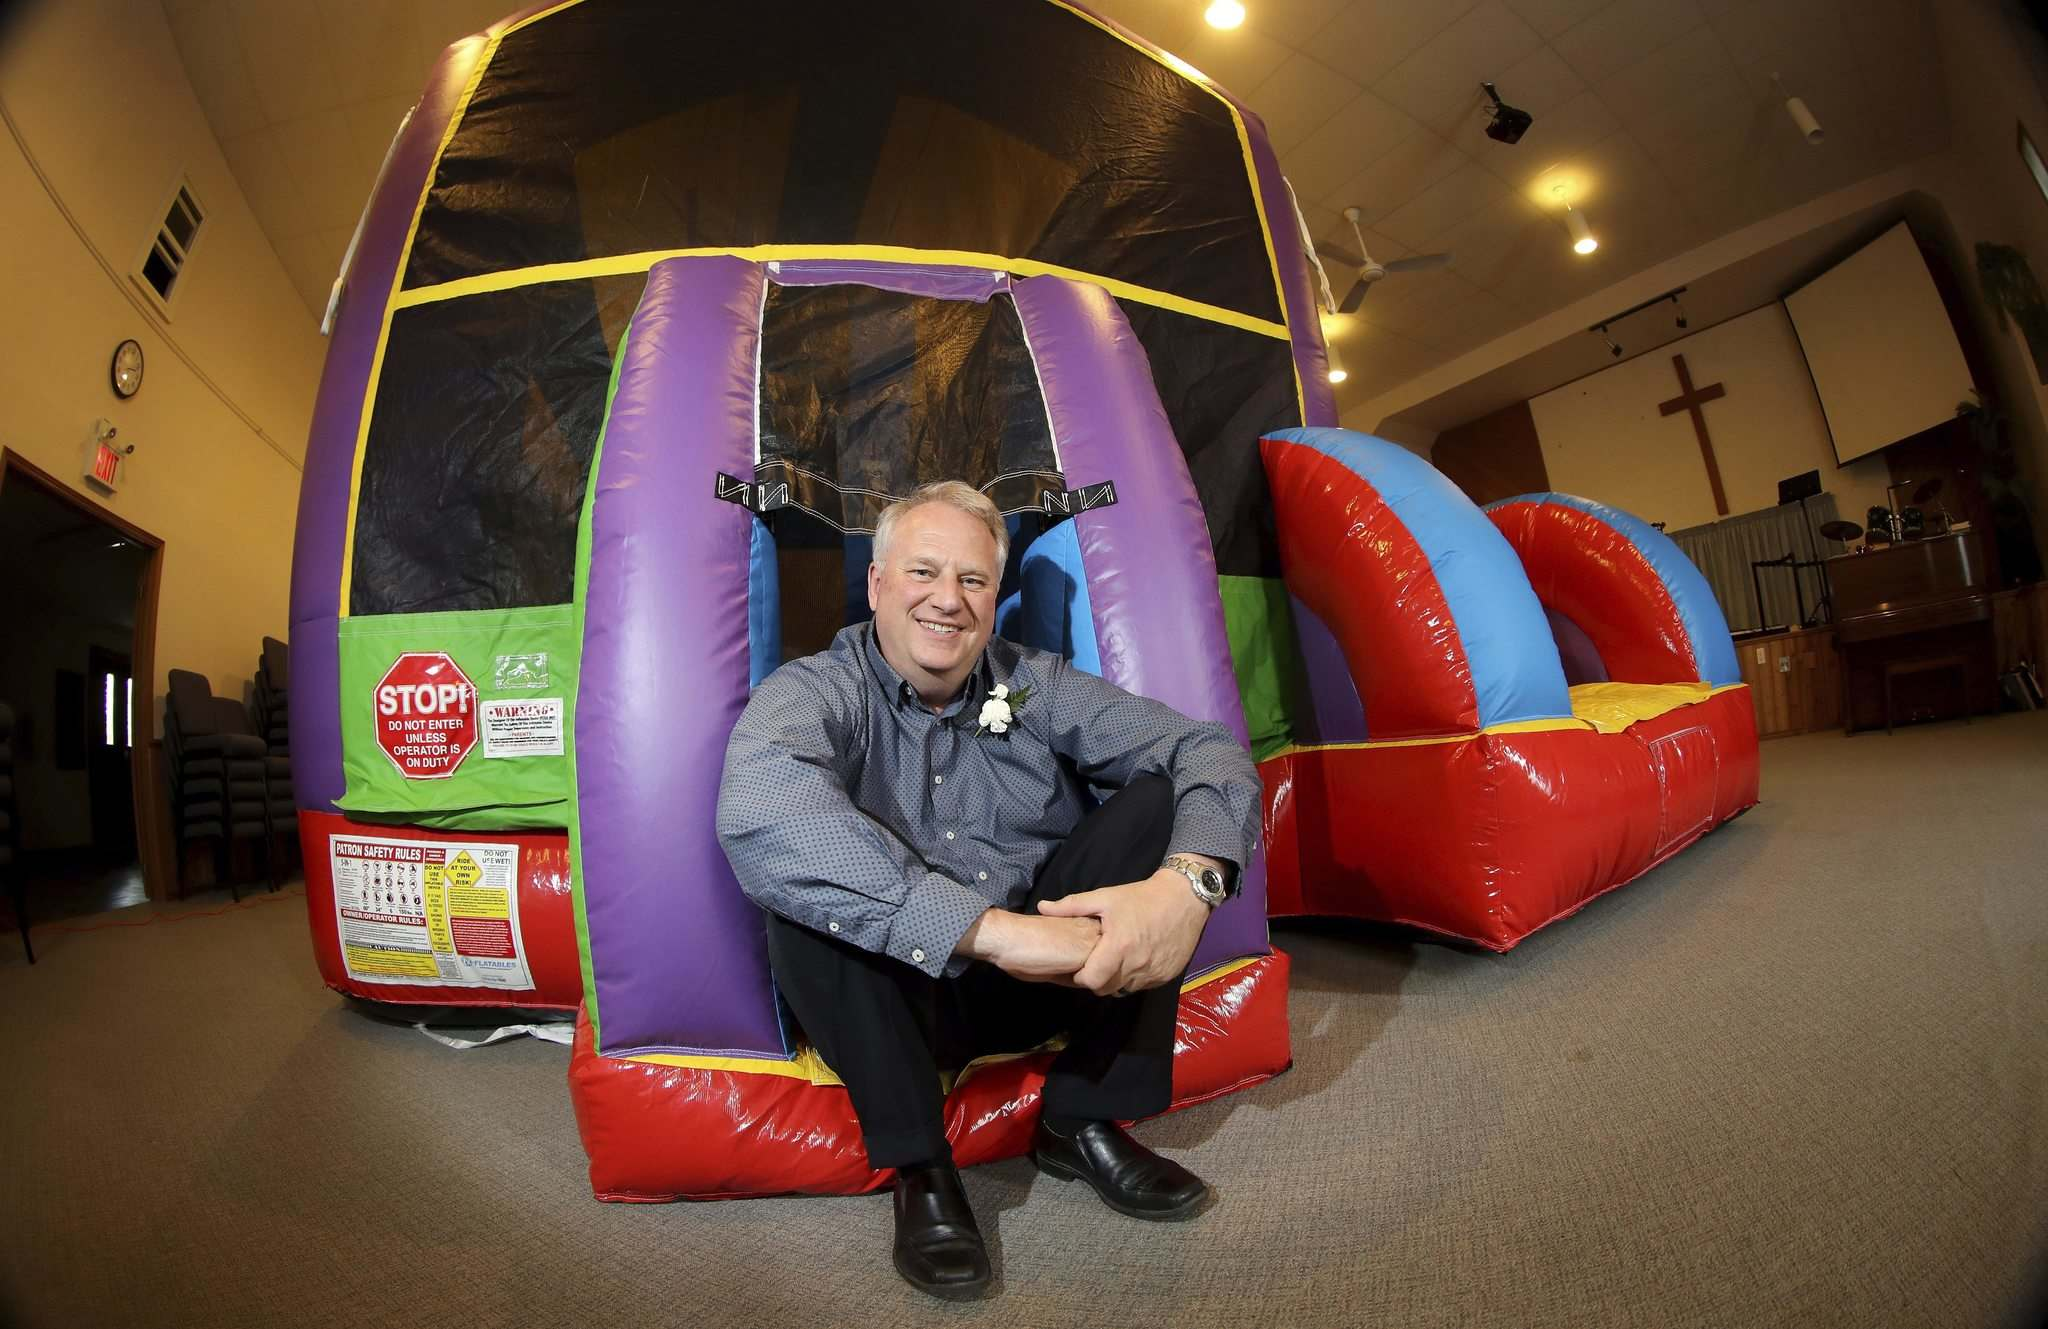 TREVOR HAGAN / WINNIPEG FREE PRESS</p><p>Pastor Rod Giesbrecht of Tabor Baptist Church spends much of his weekends setting up and taking down inflatables for various events.</p></p>